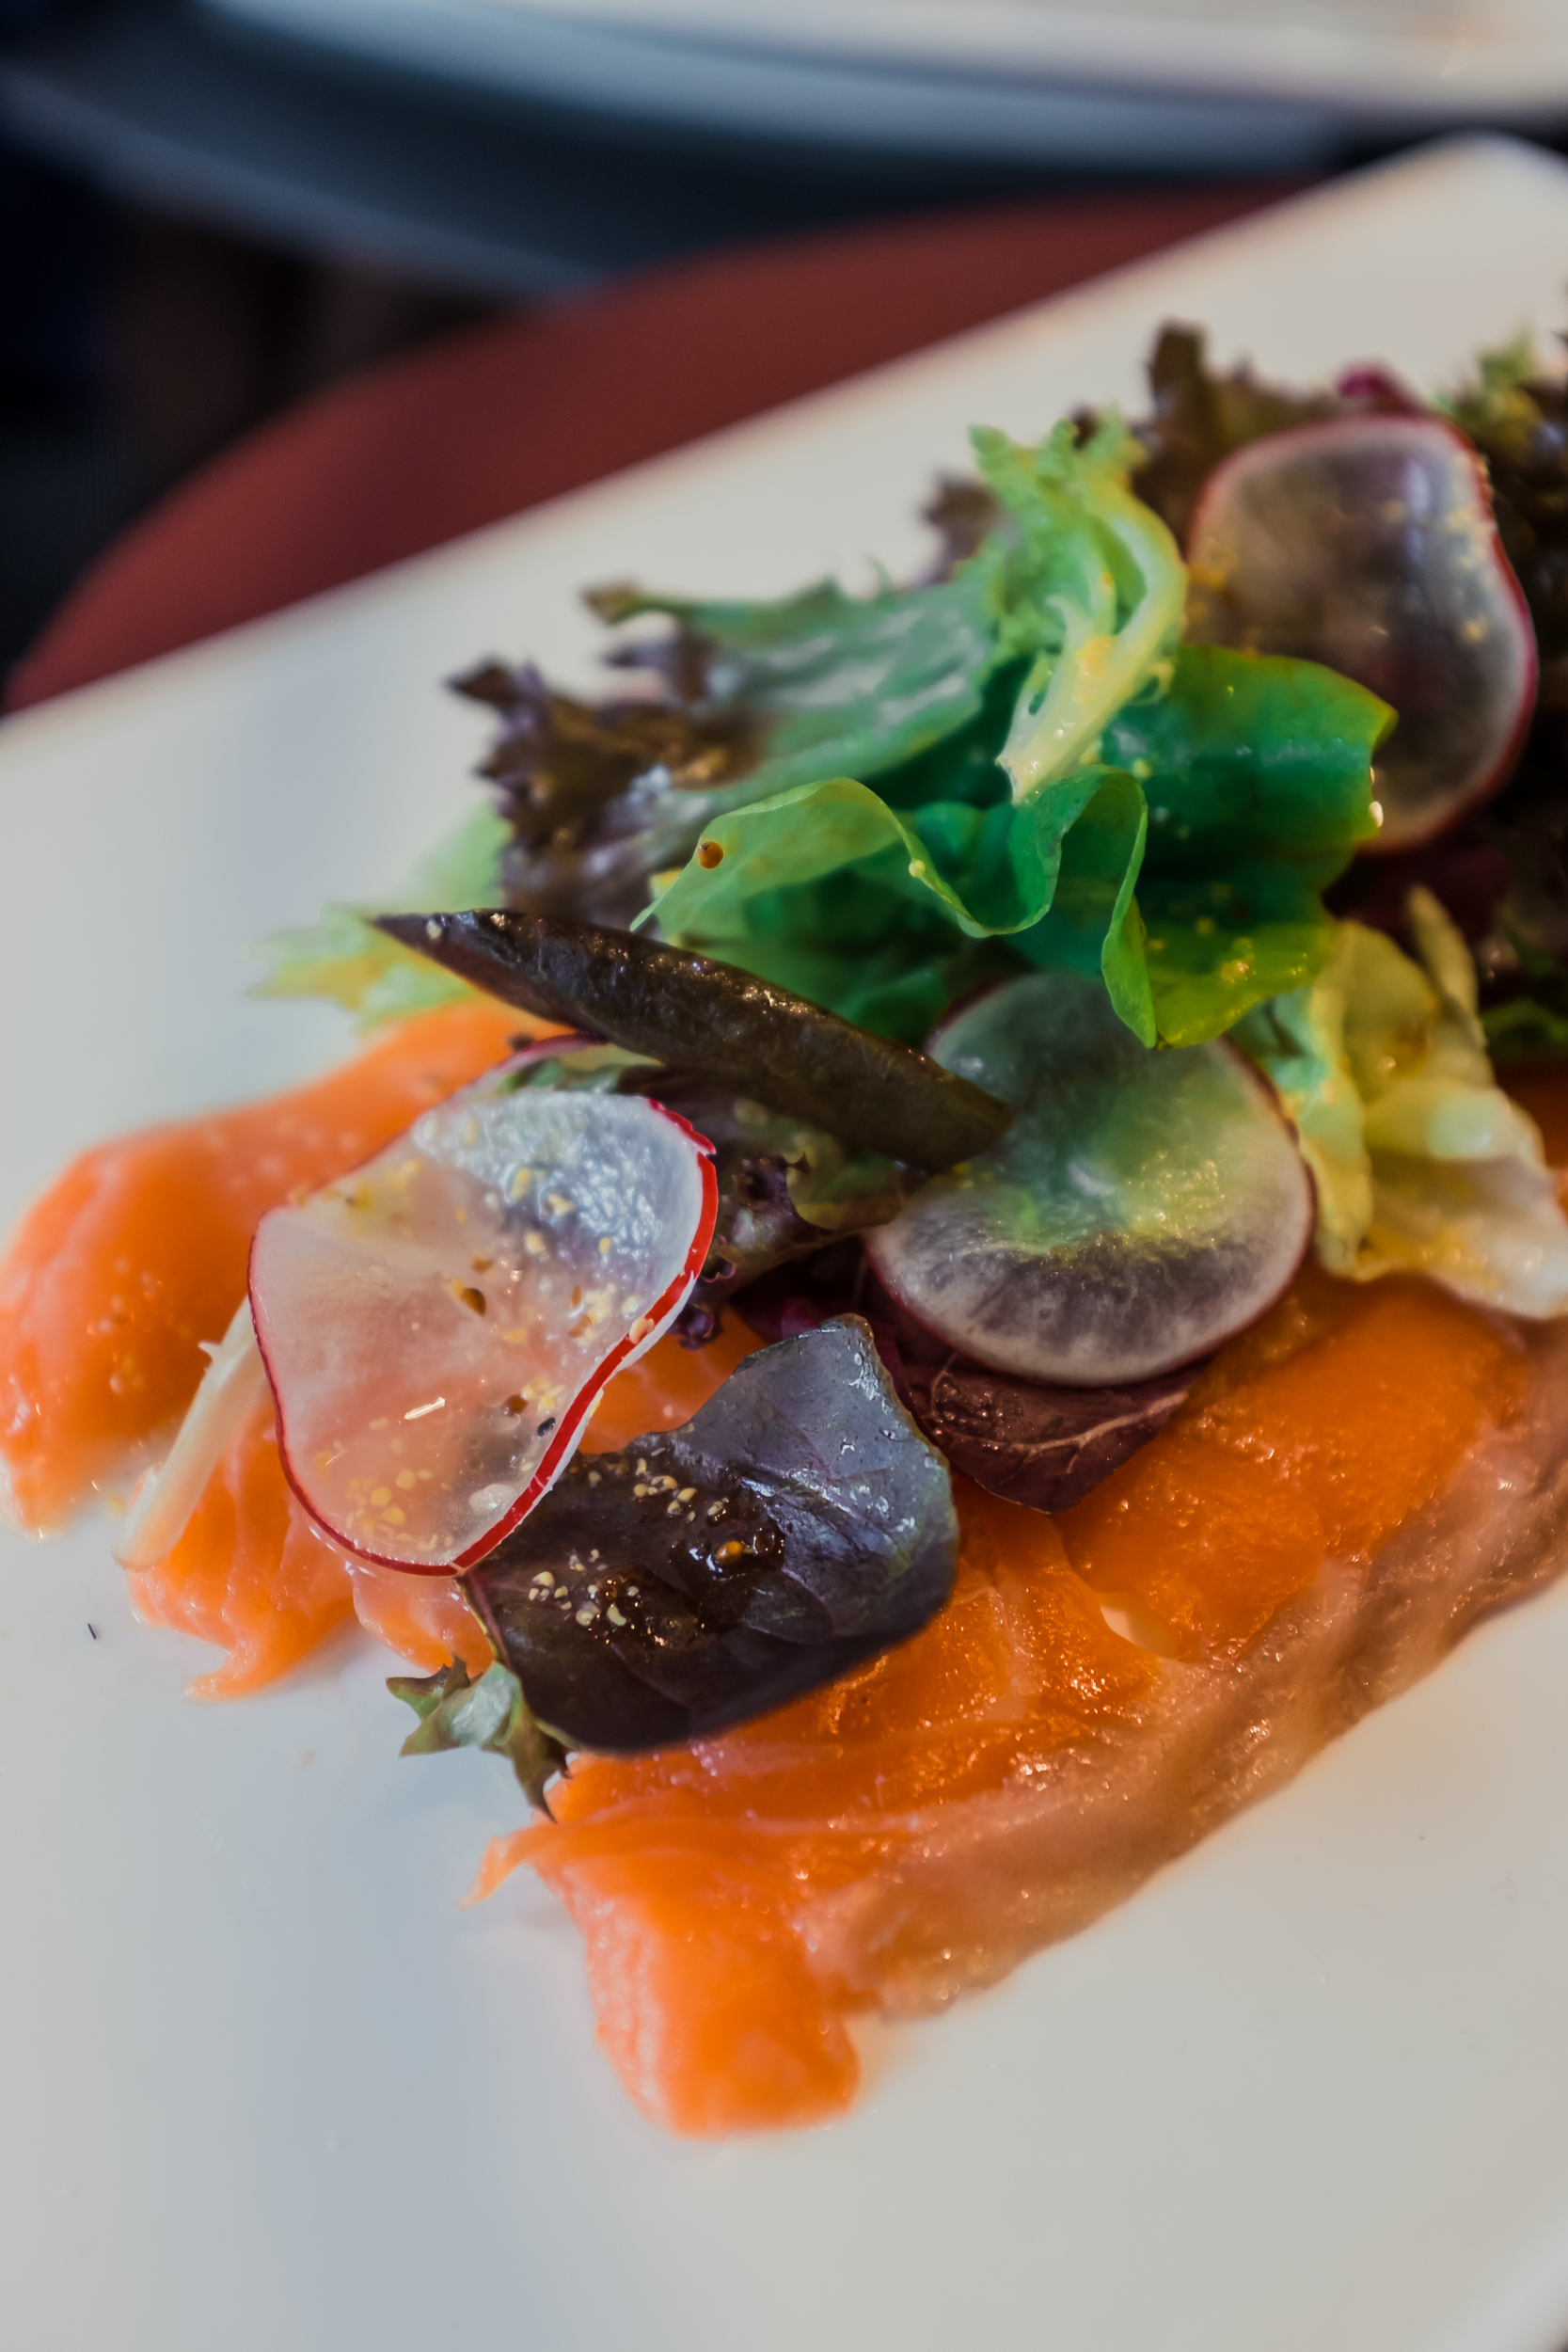 Saumon Fume - Home-Smoked Salmon, Iceberg Lettuce, and Pmmery Dressing